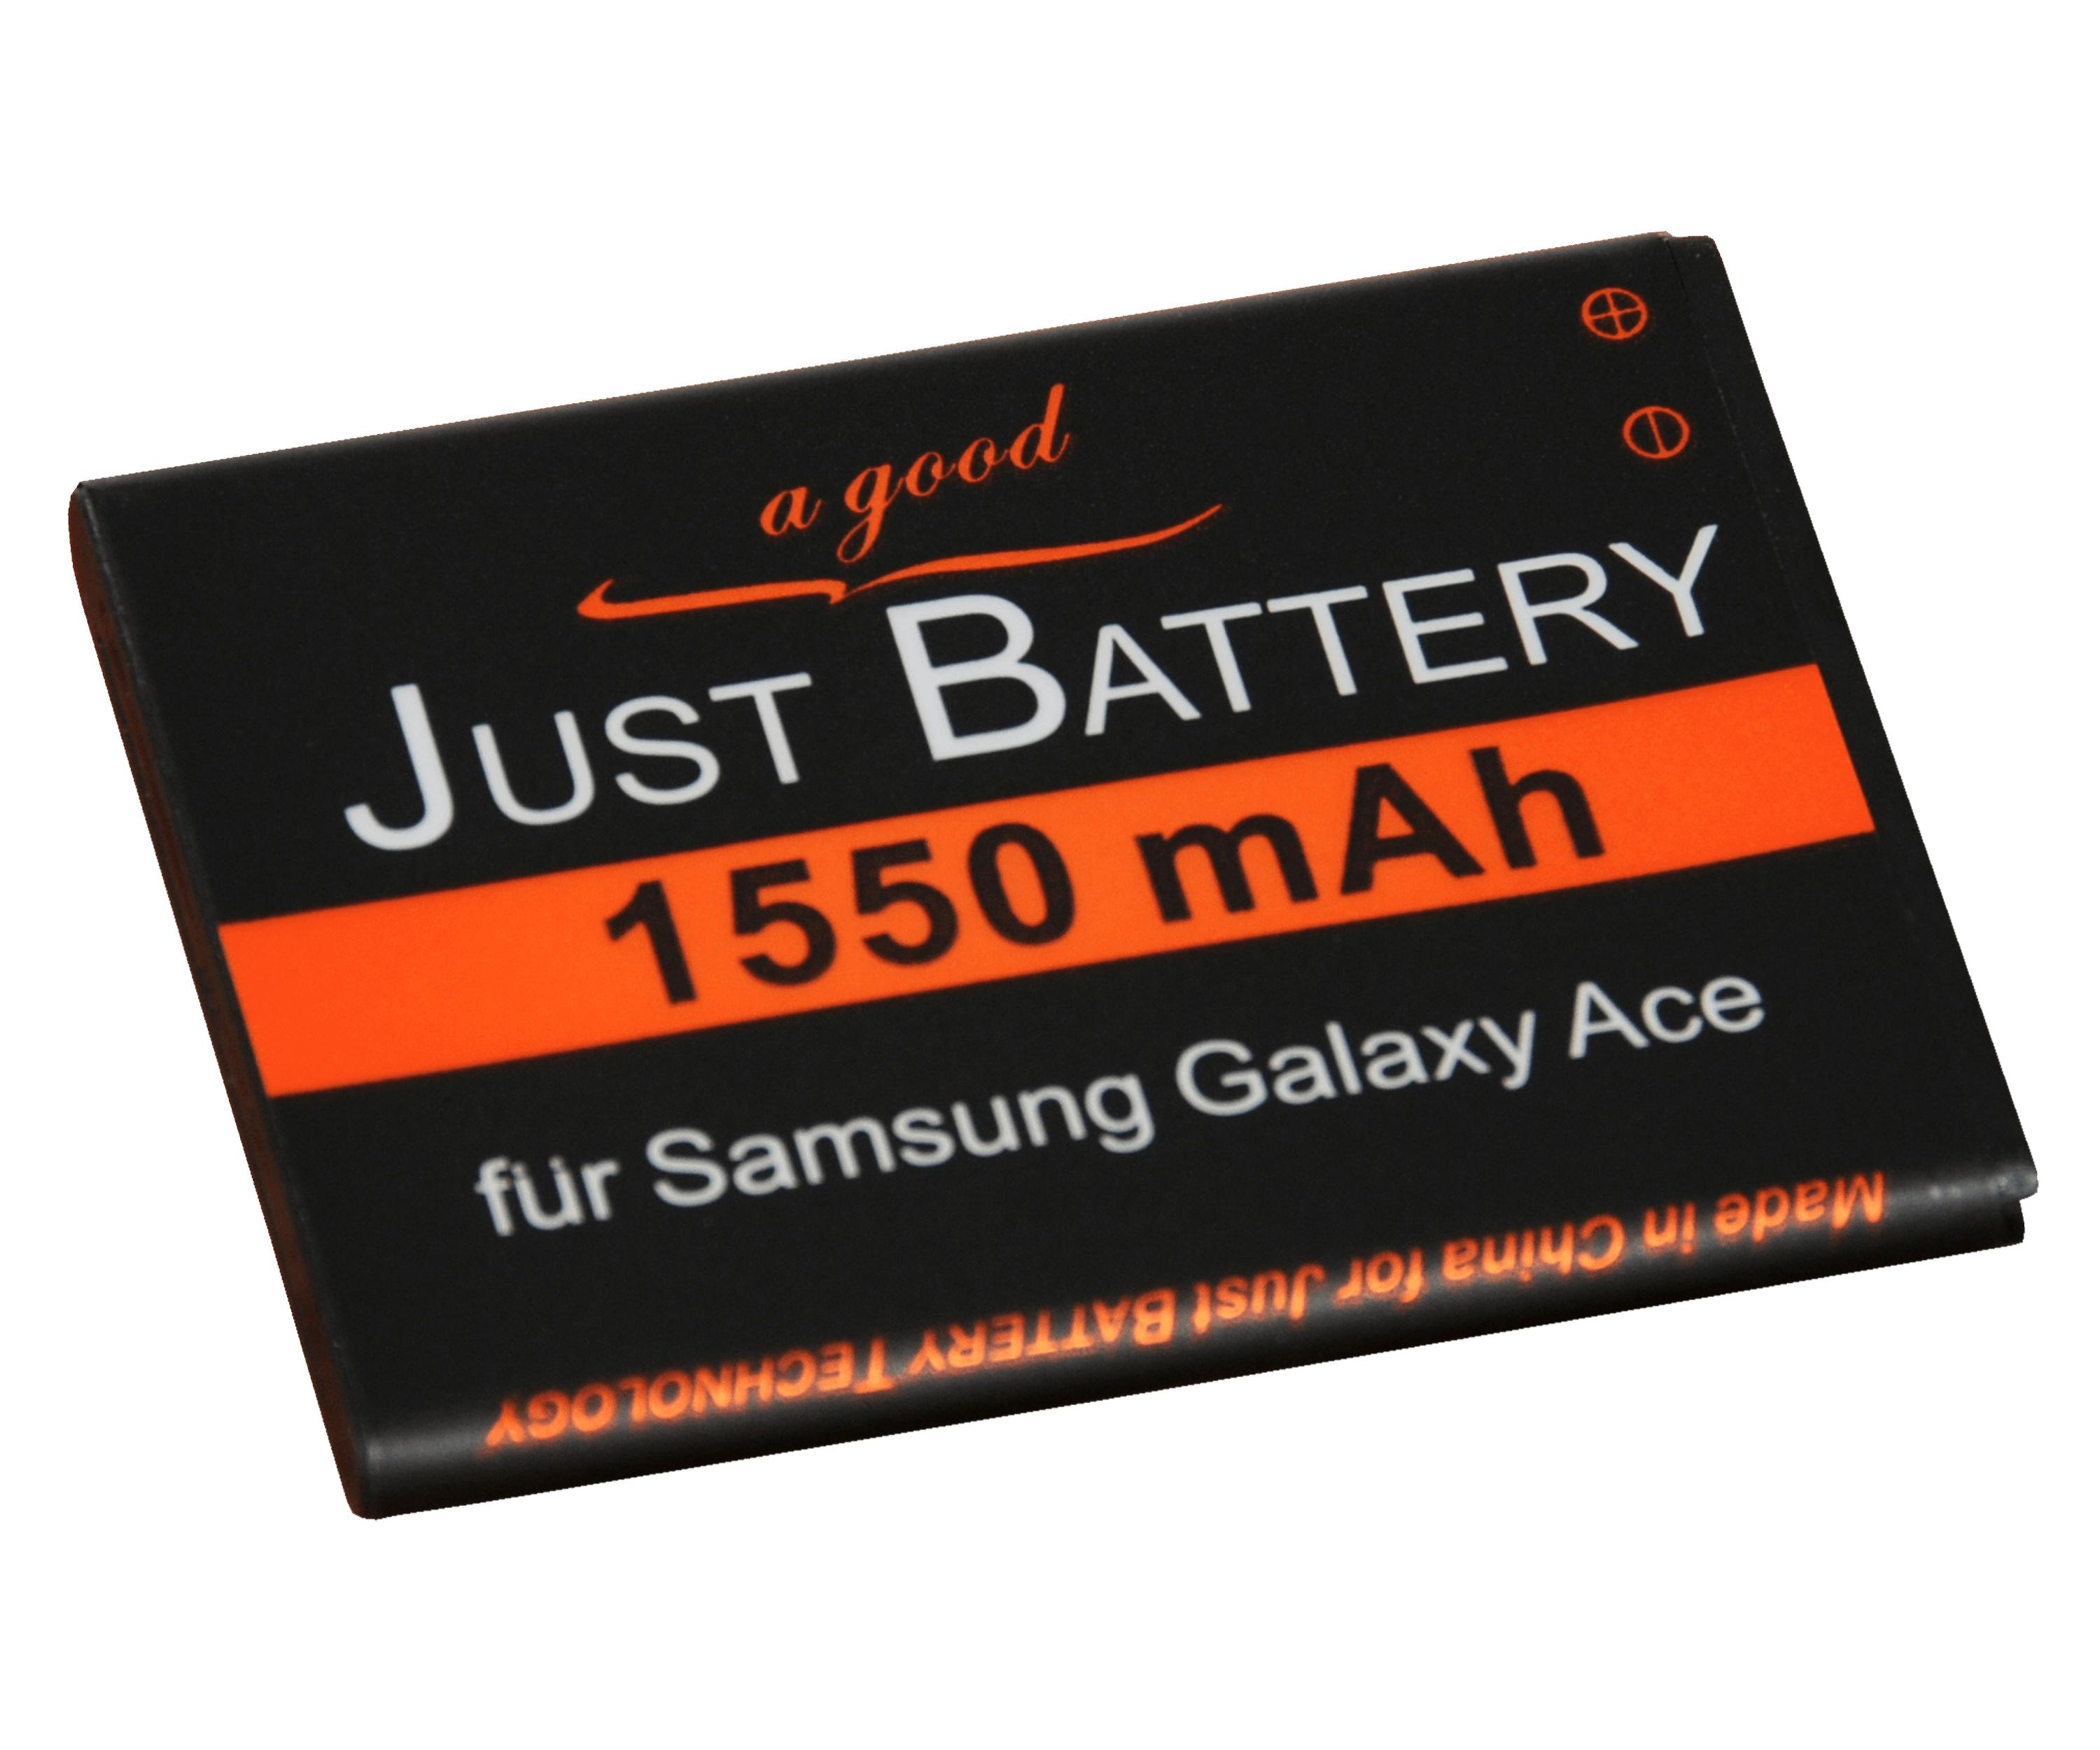 Battery for Samsung Galaxy ACE plus GT-s7500